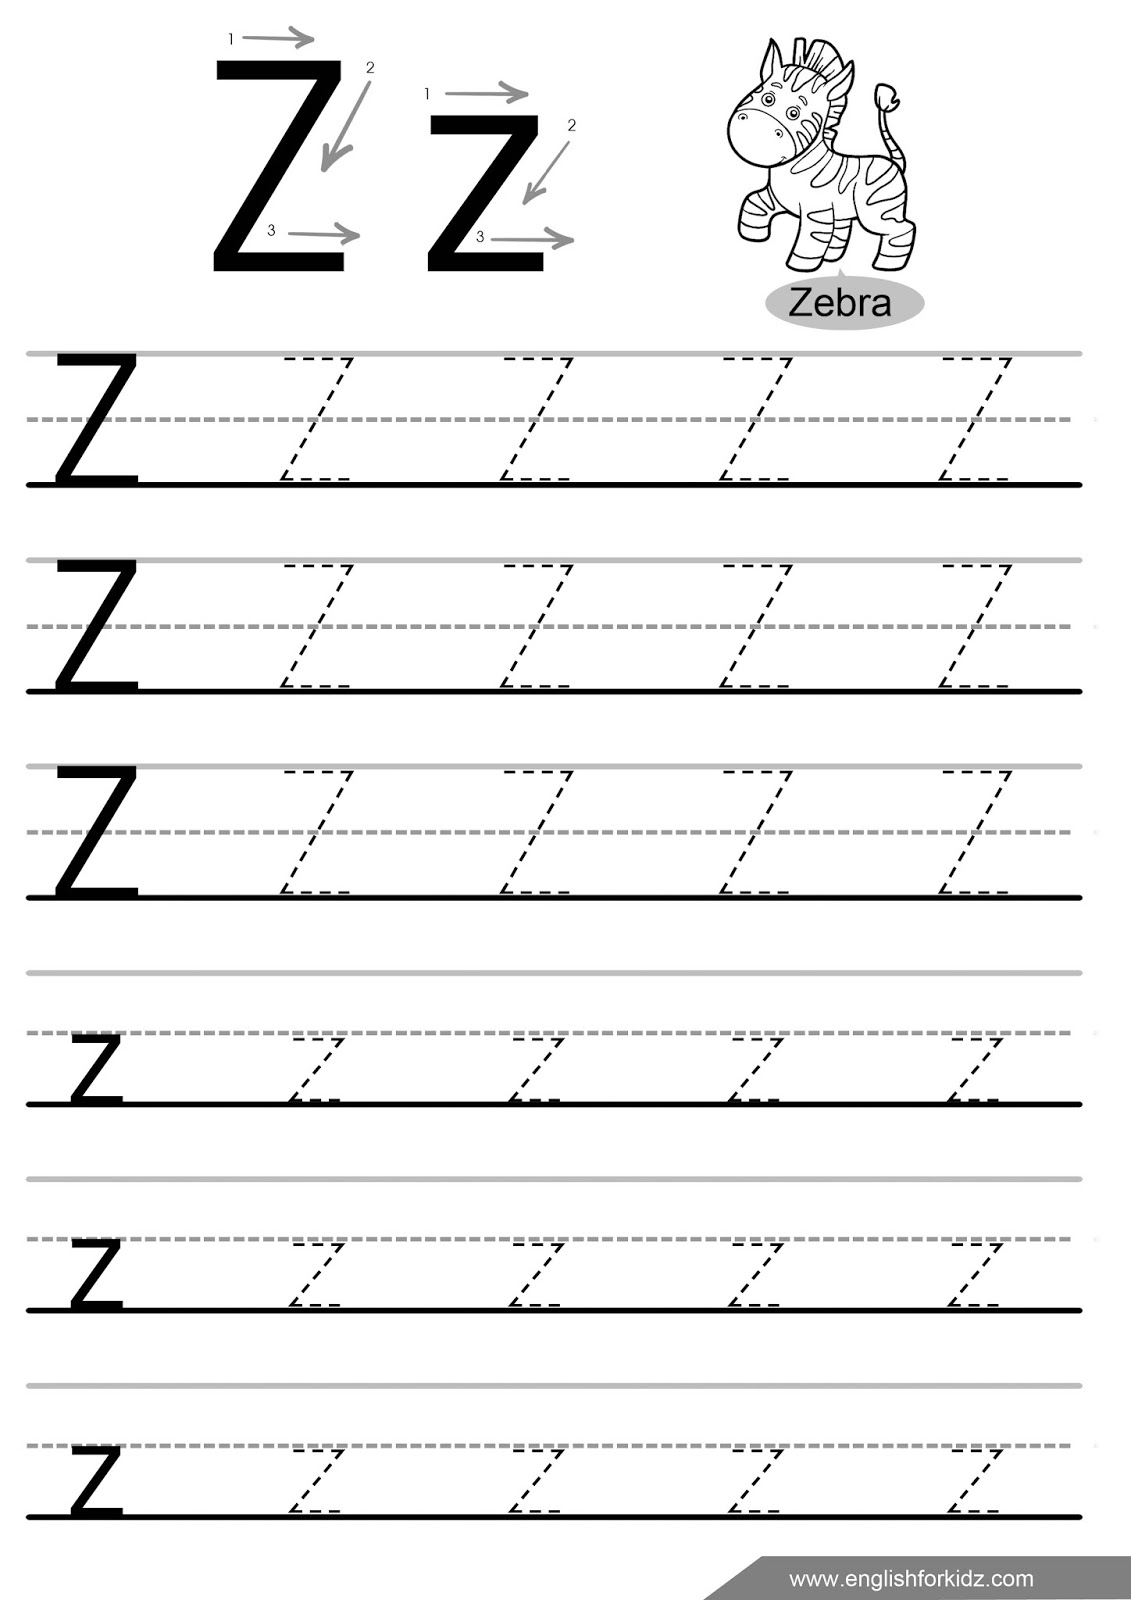 Letter Tracing Worksheets (Letters U - Z) pertaining to Letter Z Worksheets Free Printable